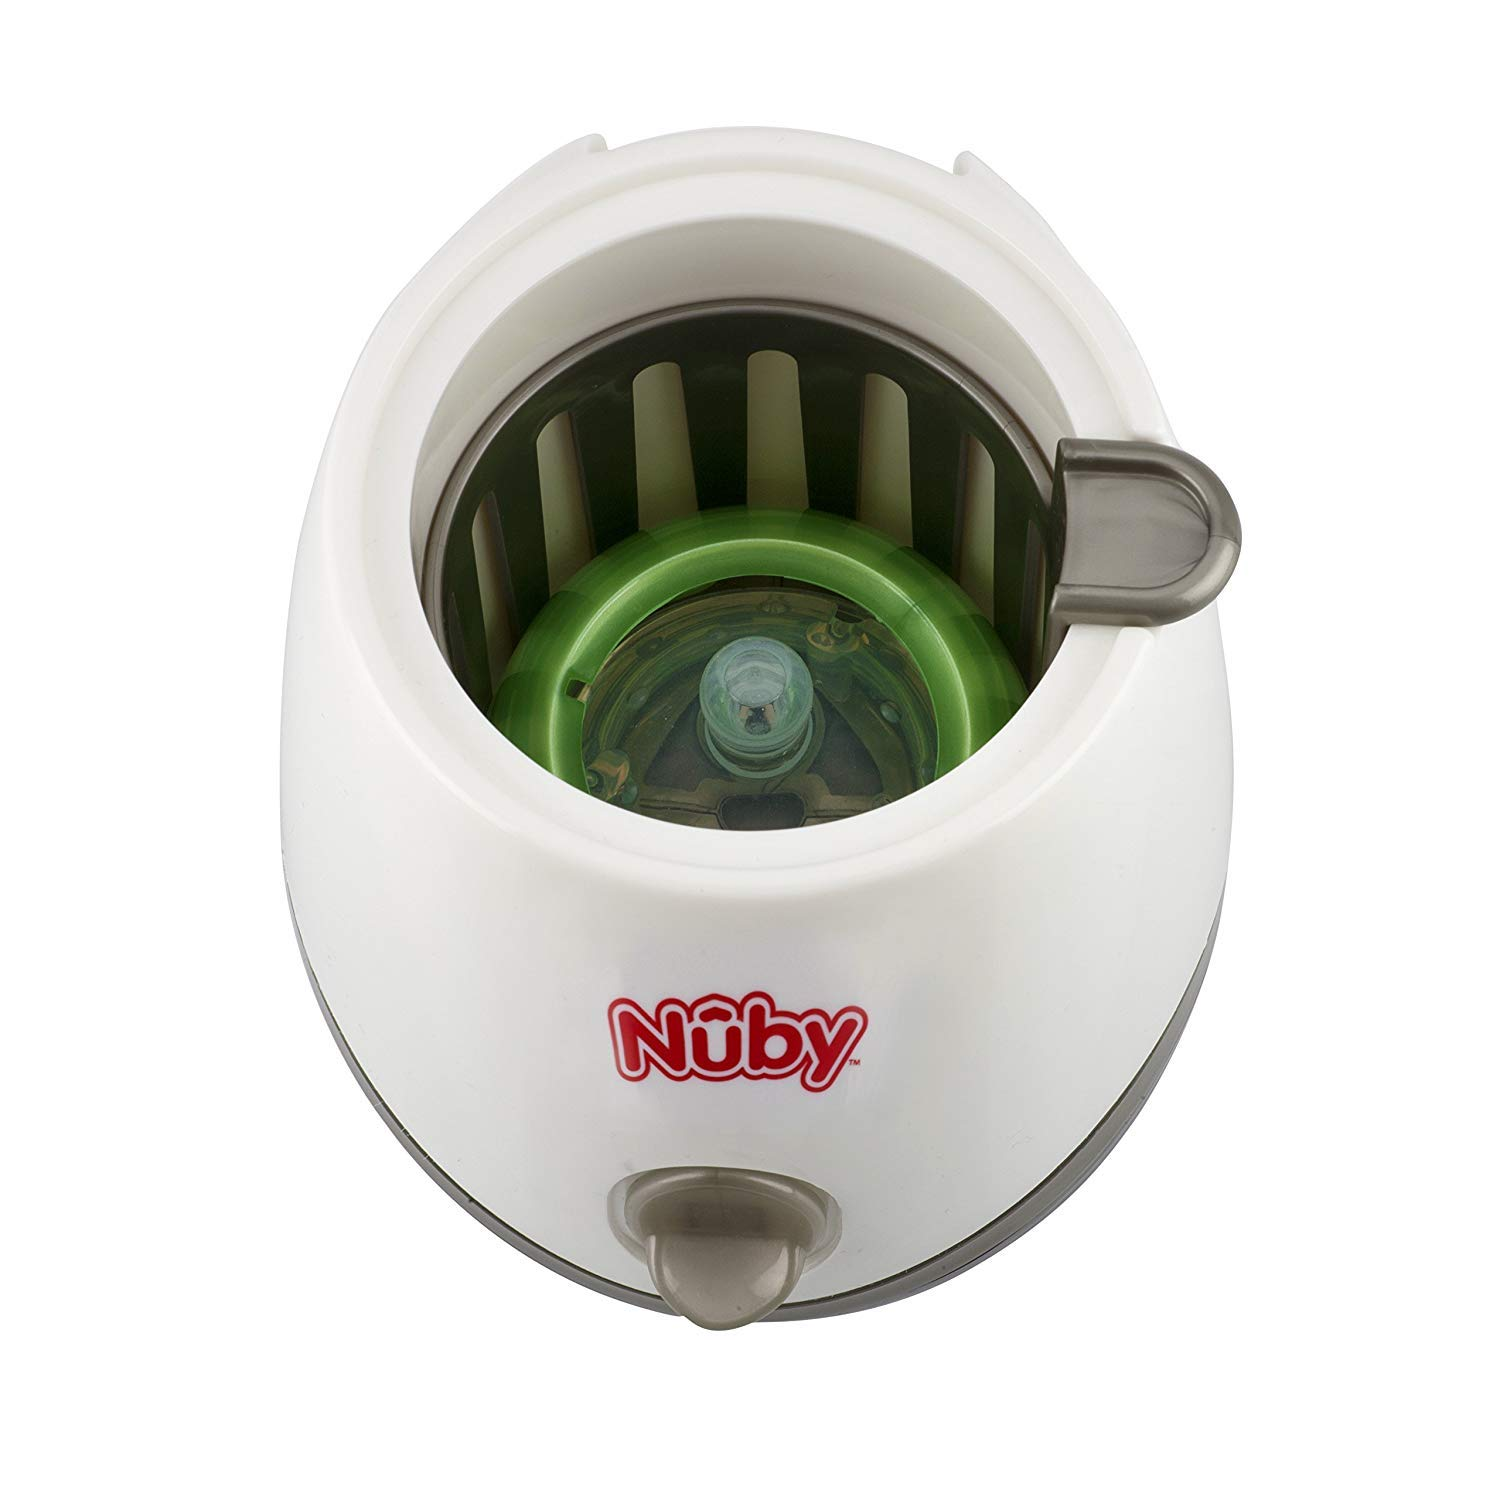 Nuby Natural Touch ELECTRIC BOTTLE FOOD WARMER Fit all Bottles Travel